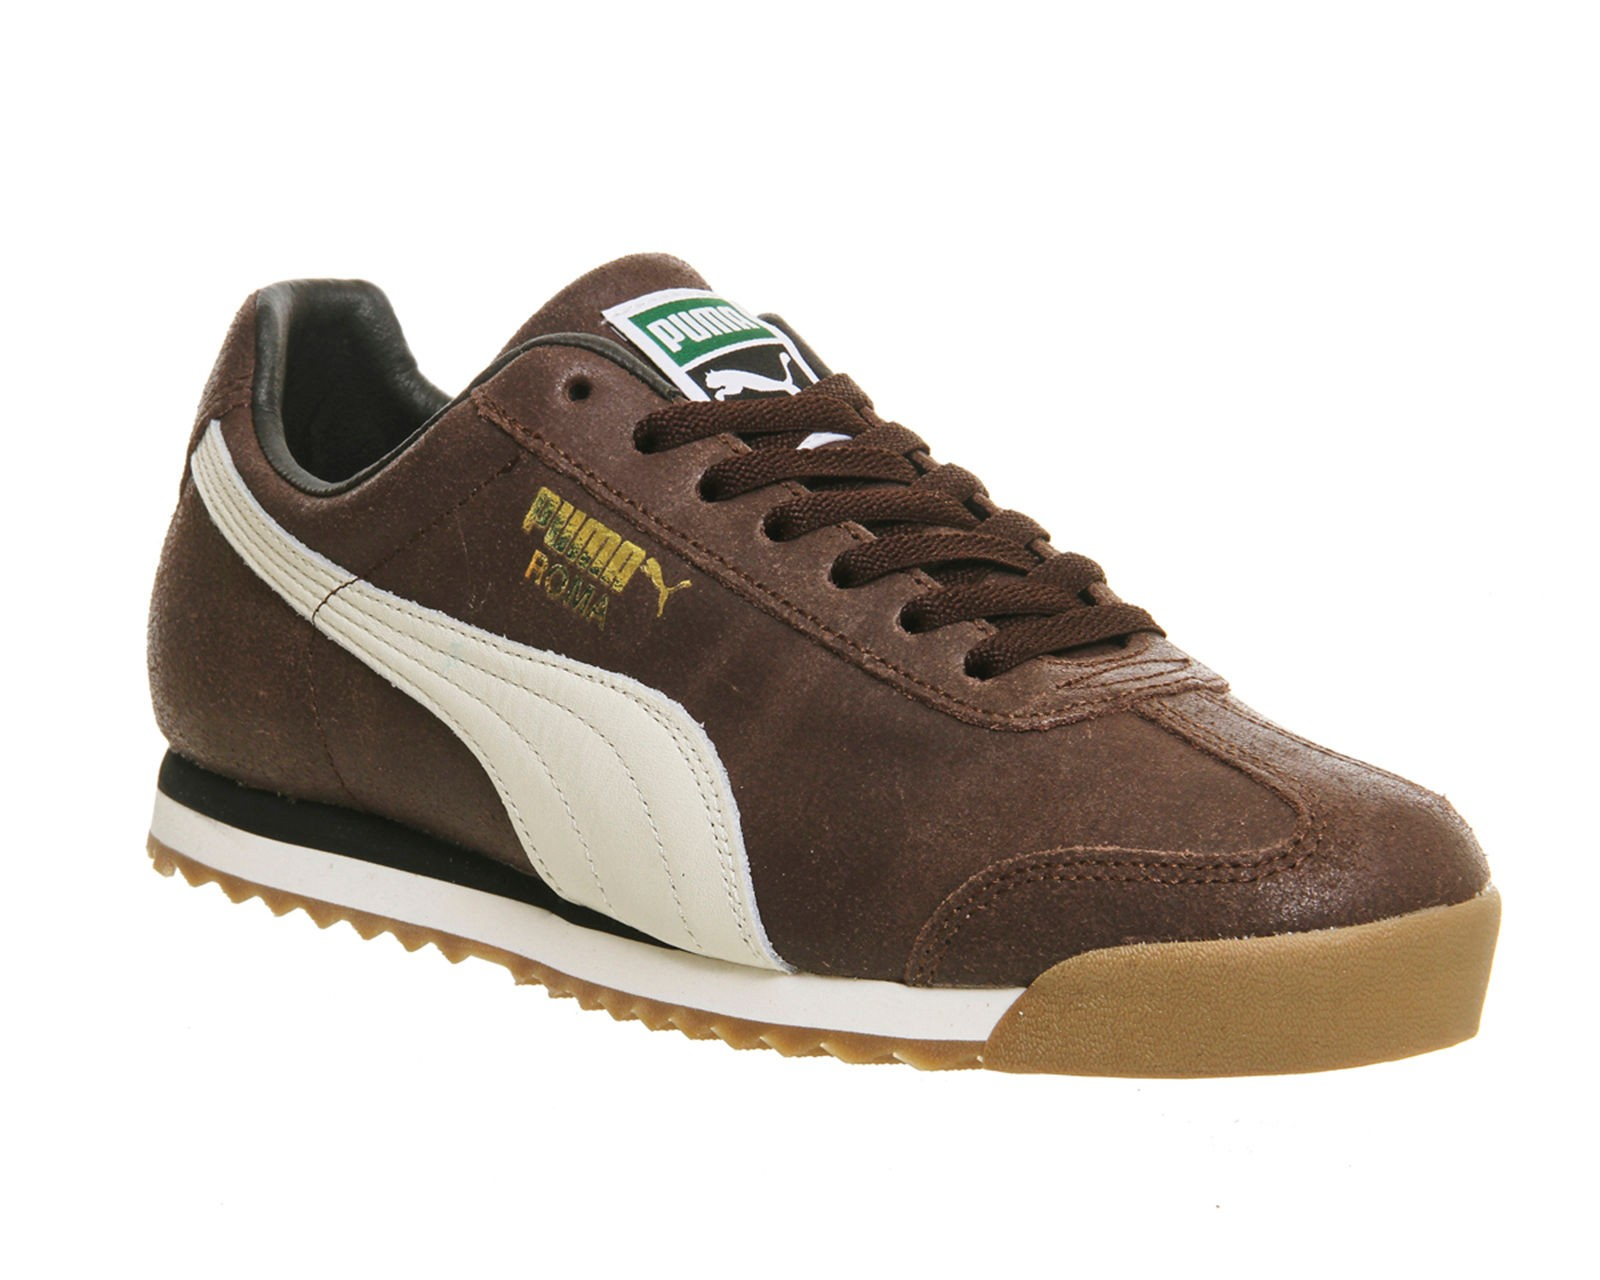 PUMA Roma Basic Men's Sneaker Review August 2020